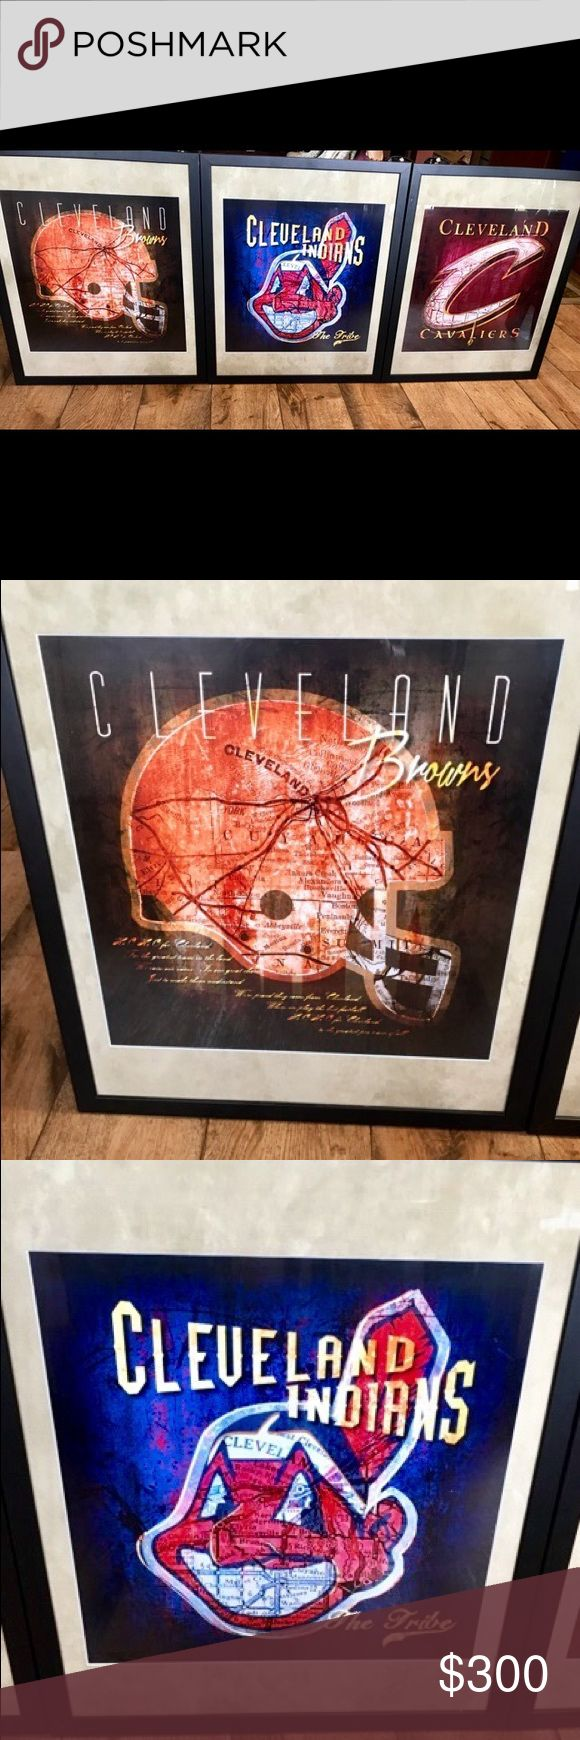 Cleveland Teams framed Prints +FREE GIFT! Display your loyalty for the Indians, Cavs & Browns w this 3-piece set! High quality, tasteful prints, professionally framed & matted. Each piece has a subtle shadow map of Cleveland running in the background. Last pic shows your FREE gift w purchase!! Other